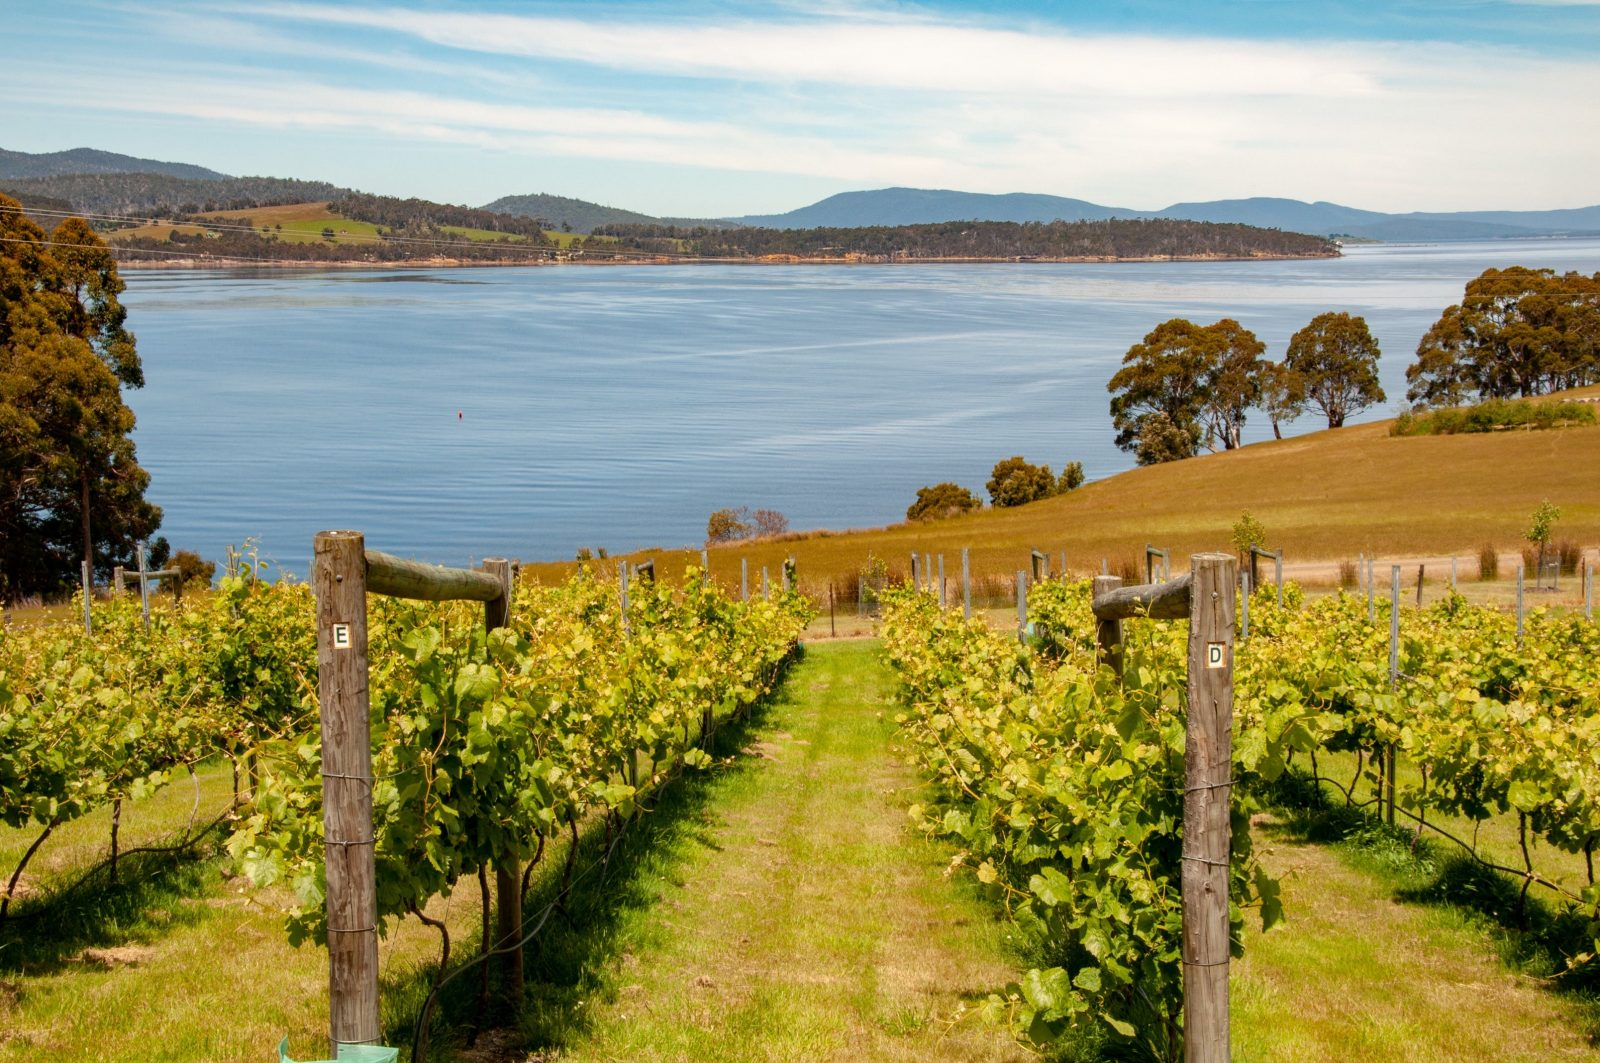 Farm pinot vineyard overlooking Cygnet bay and Bruny Island